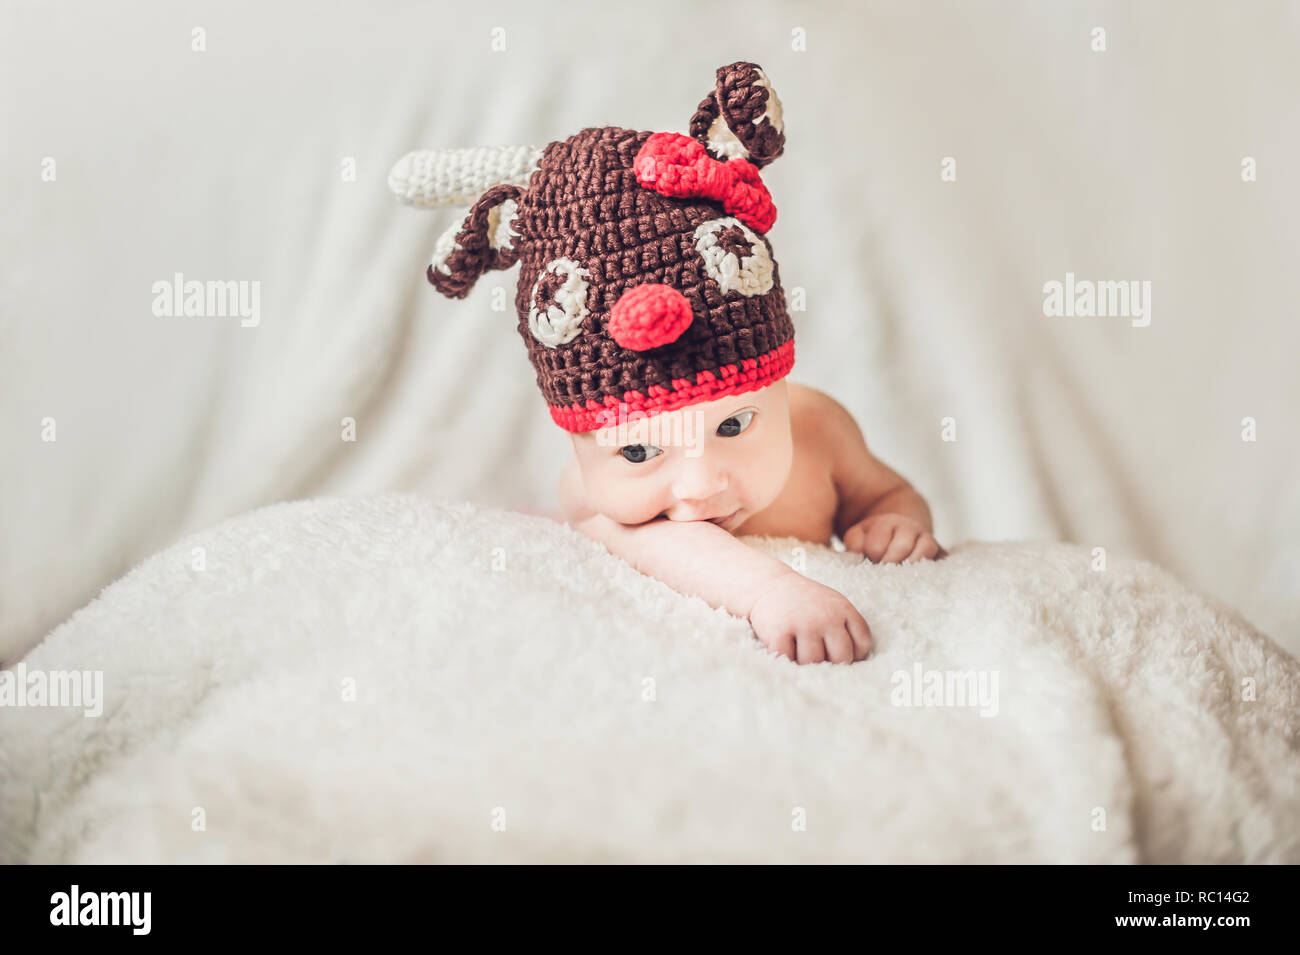 c1f112ed5 Crocheted Hat Stock Photos & Crocheted Hat Stock Images - Alamy